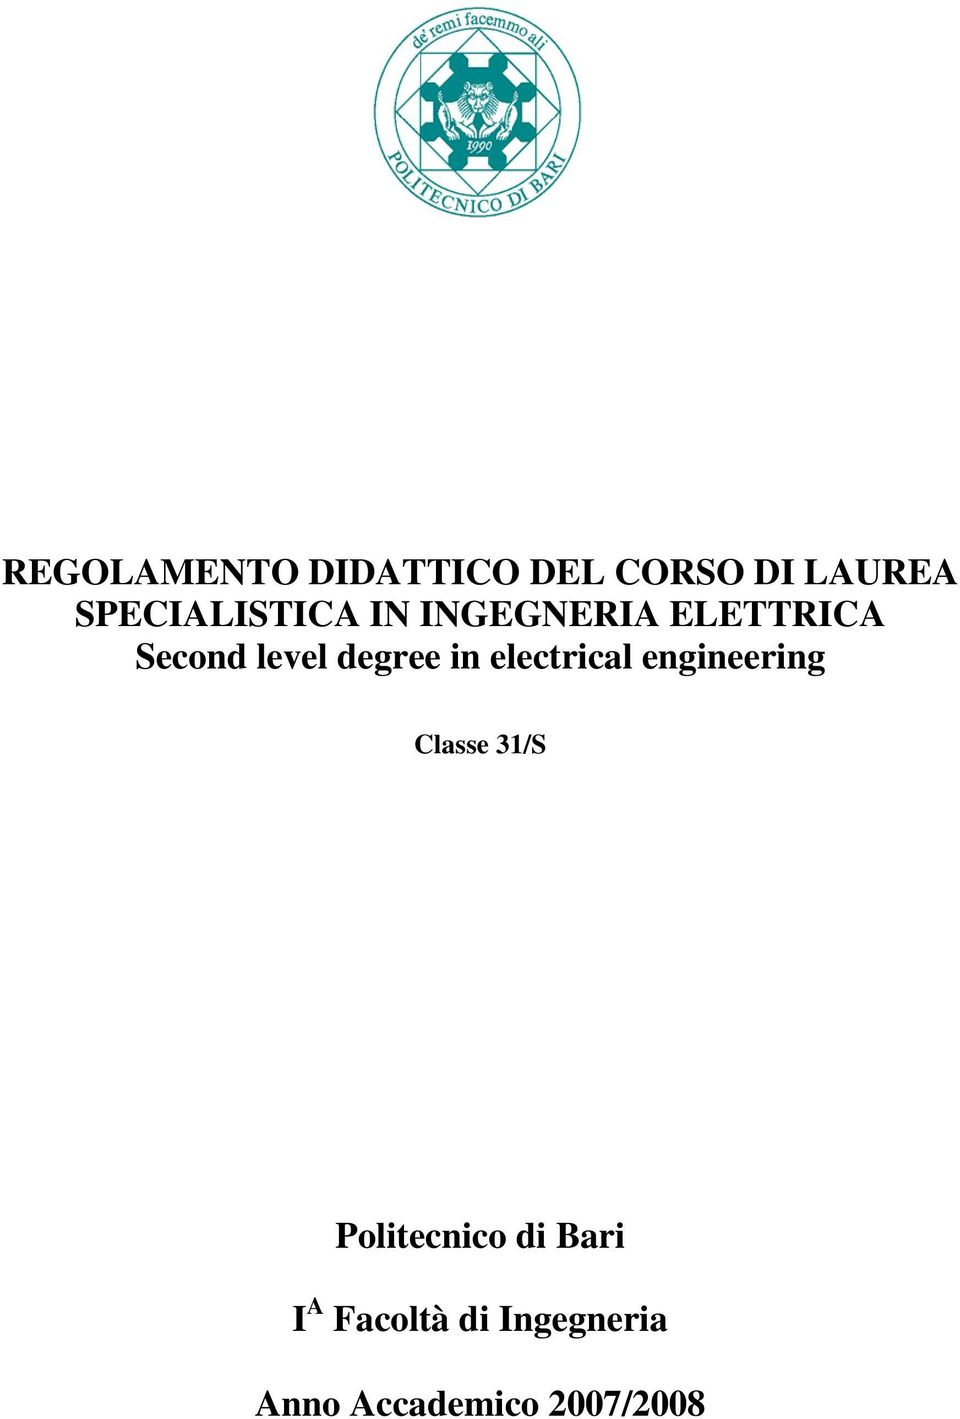 degree in electrical engineering Classe 31/S